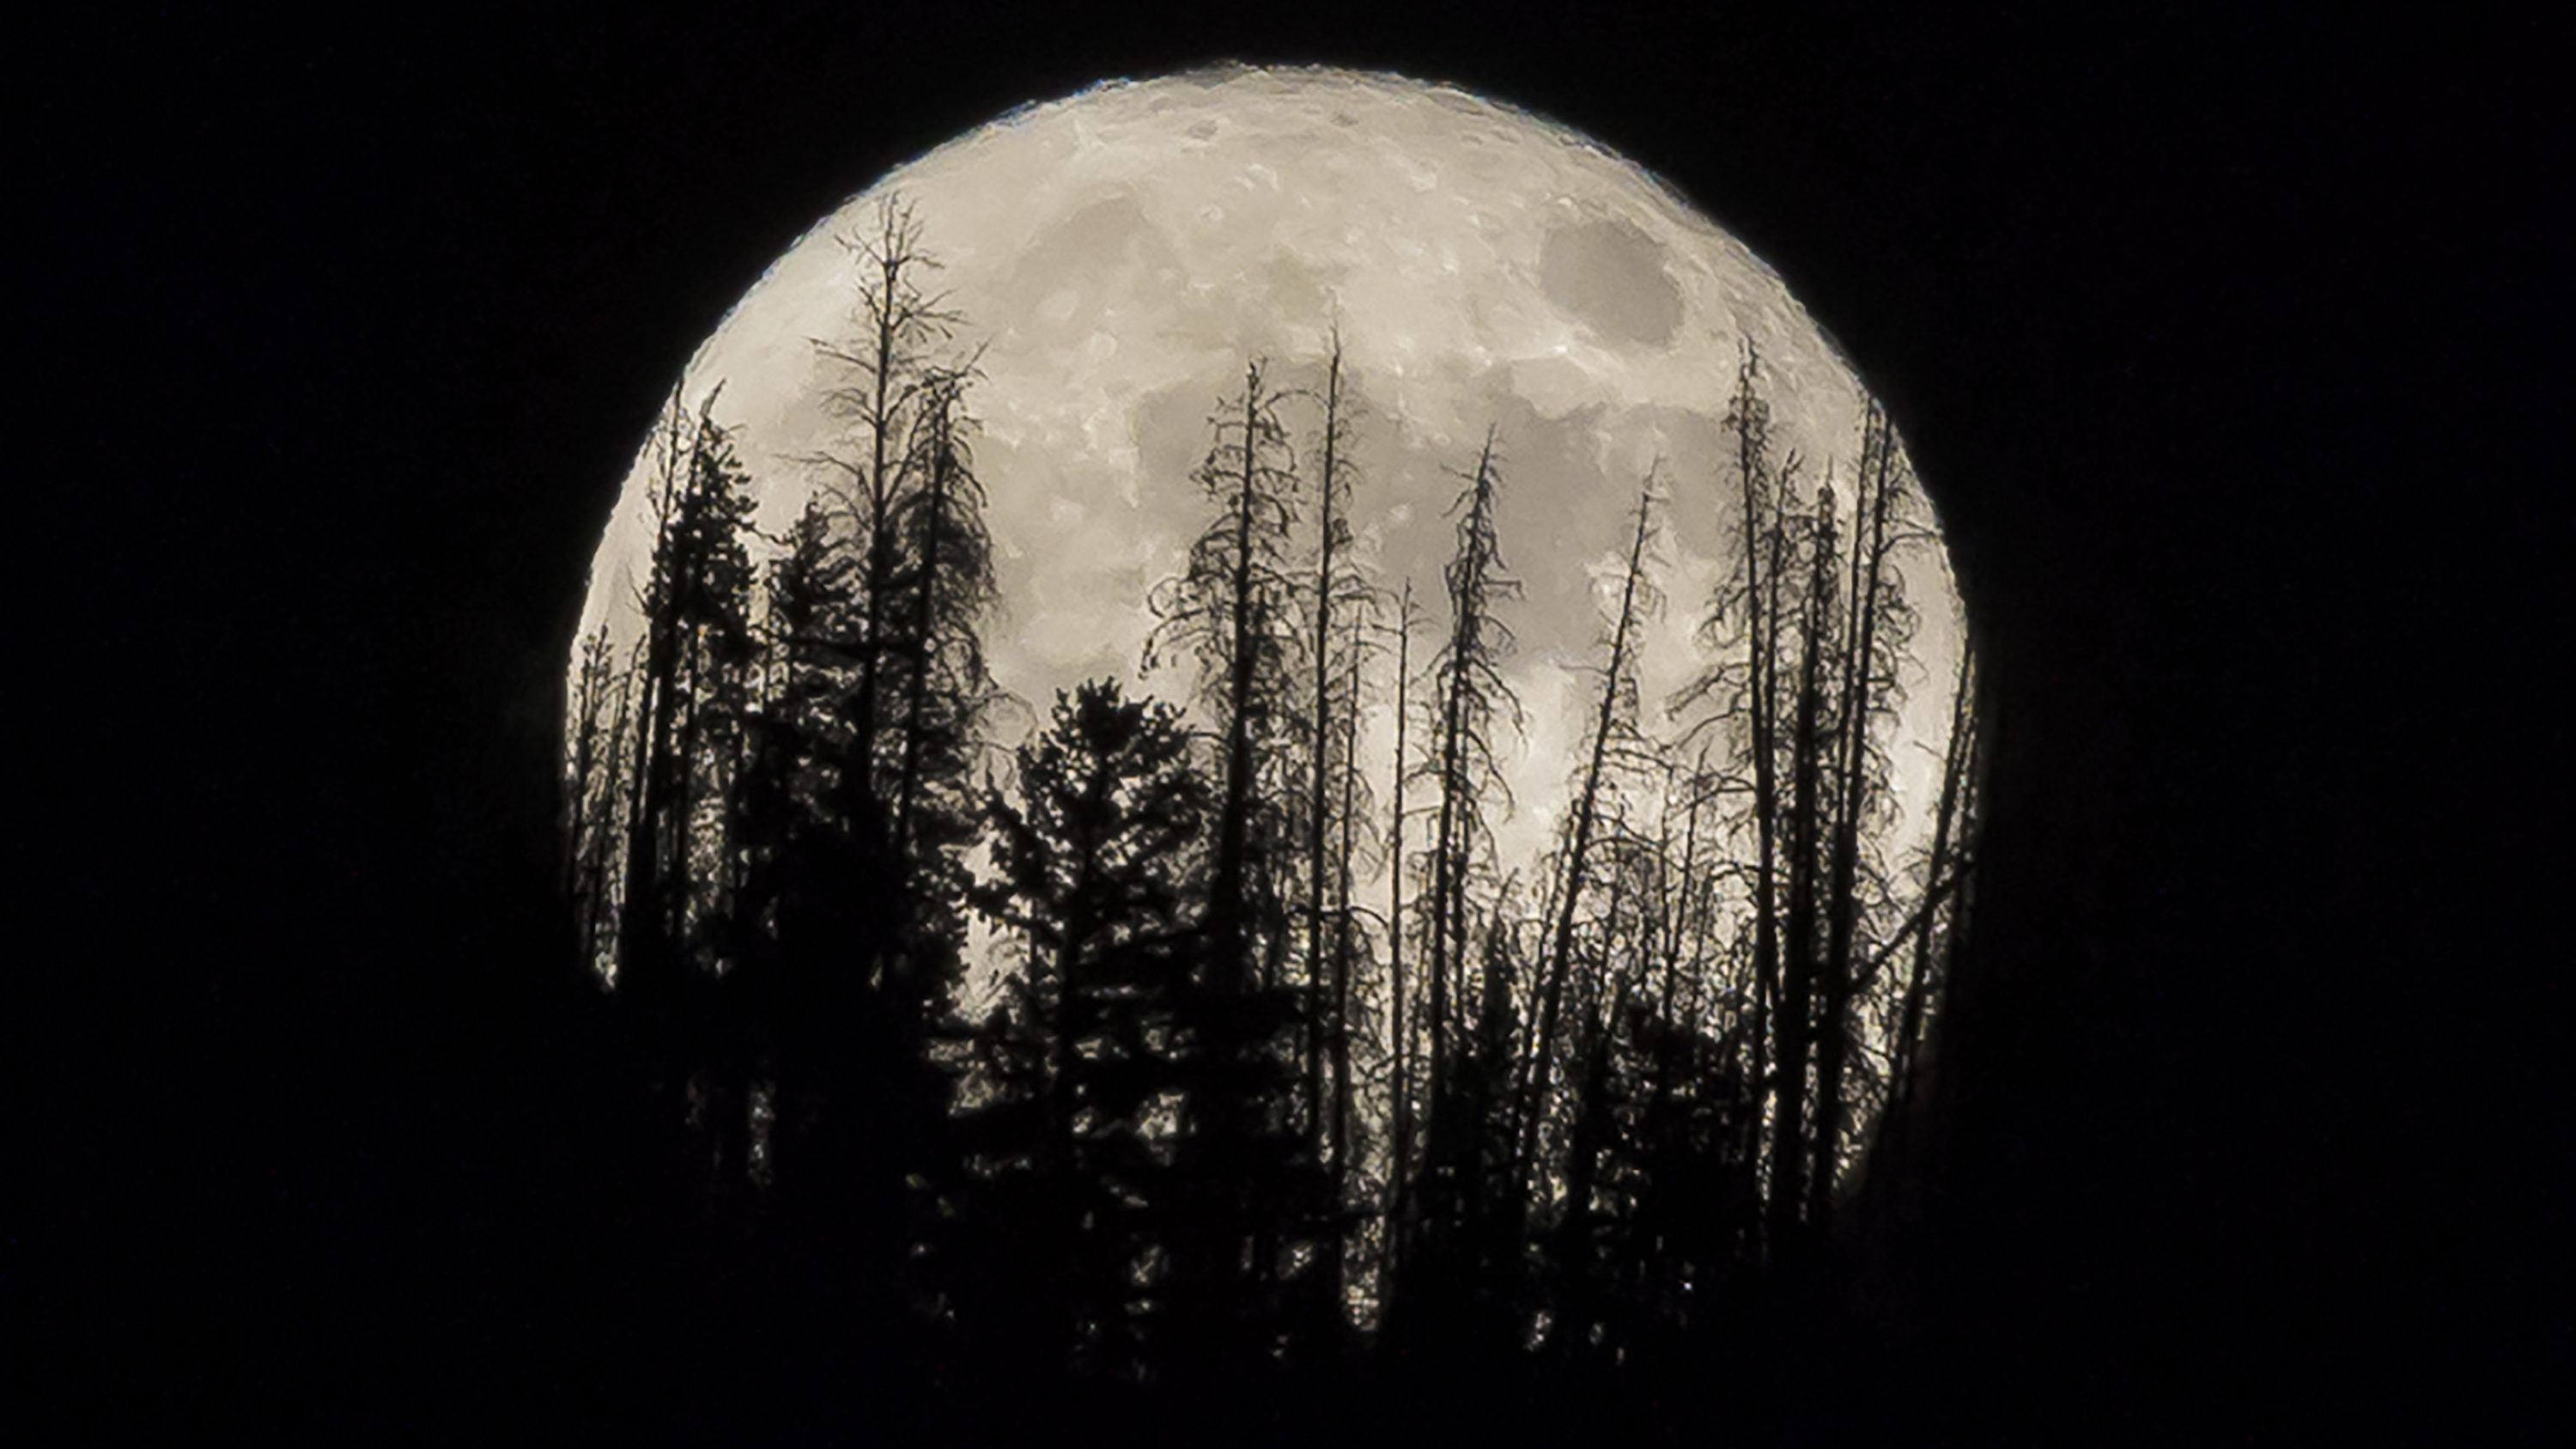 Evergreen trees are silhouetted on the mountain top as a supermoon rises over over the Dark Sky Community of  Summit Sky Ranch in Silverthorne, Colo., Monday, Nov. 14, 2016.